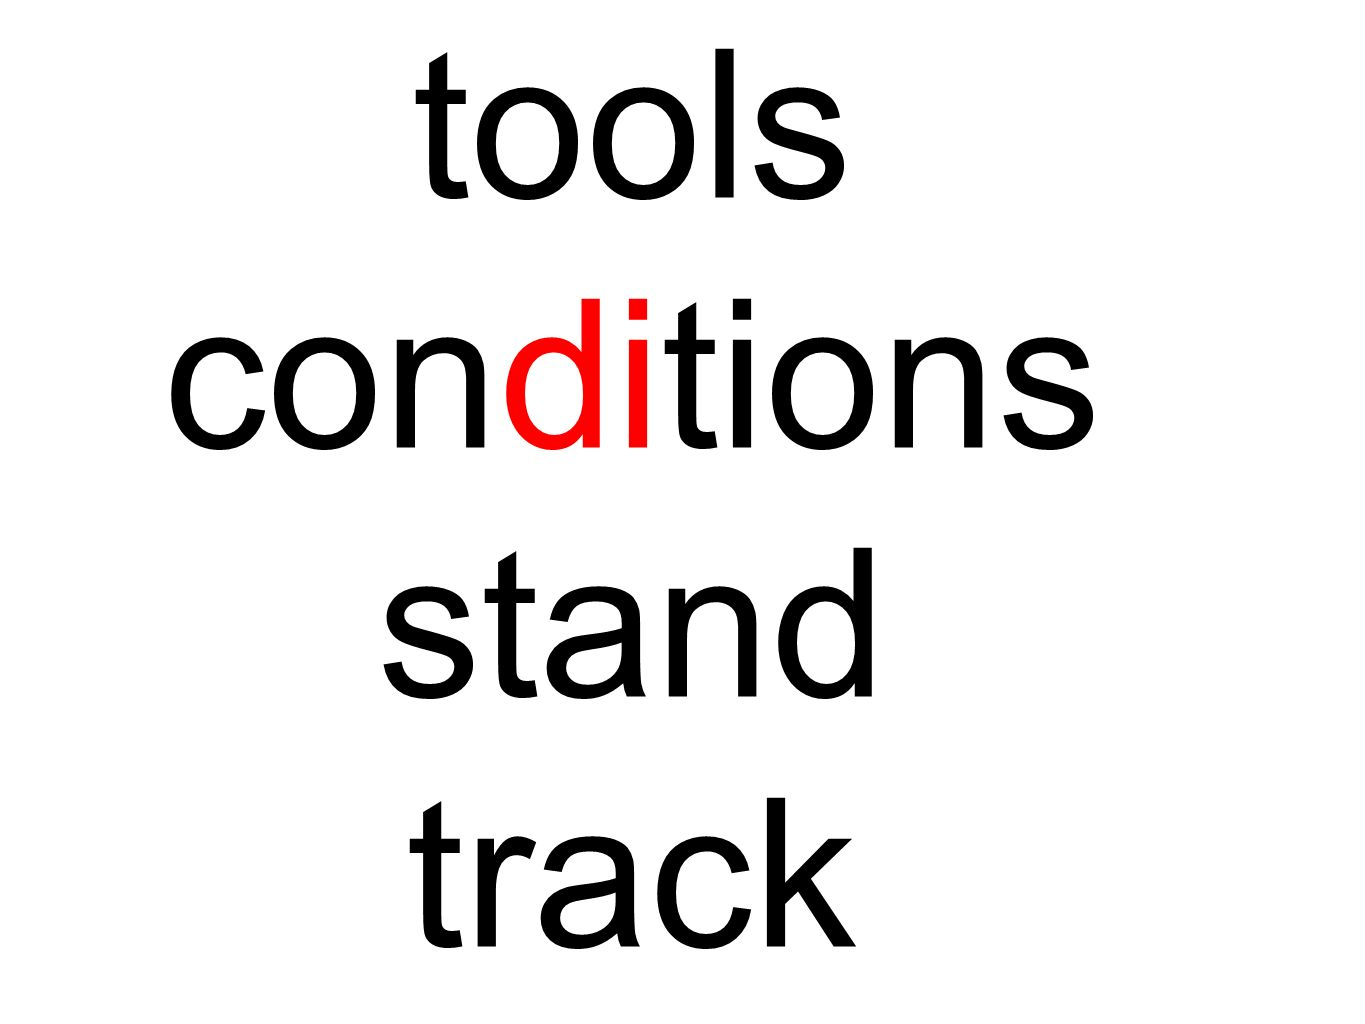 tools conditions stand track